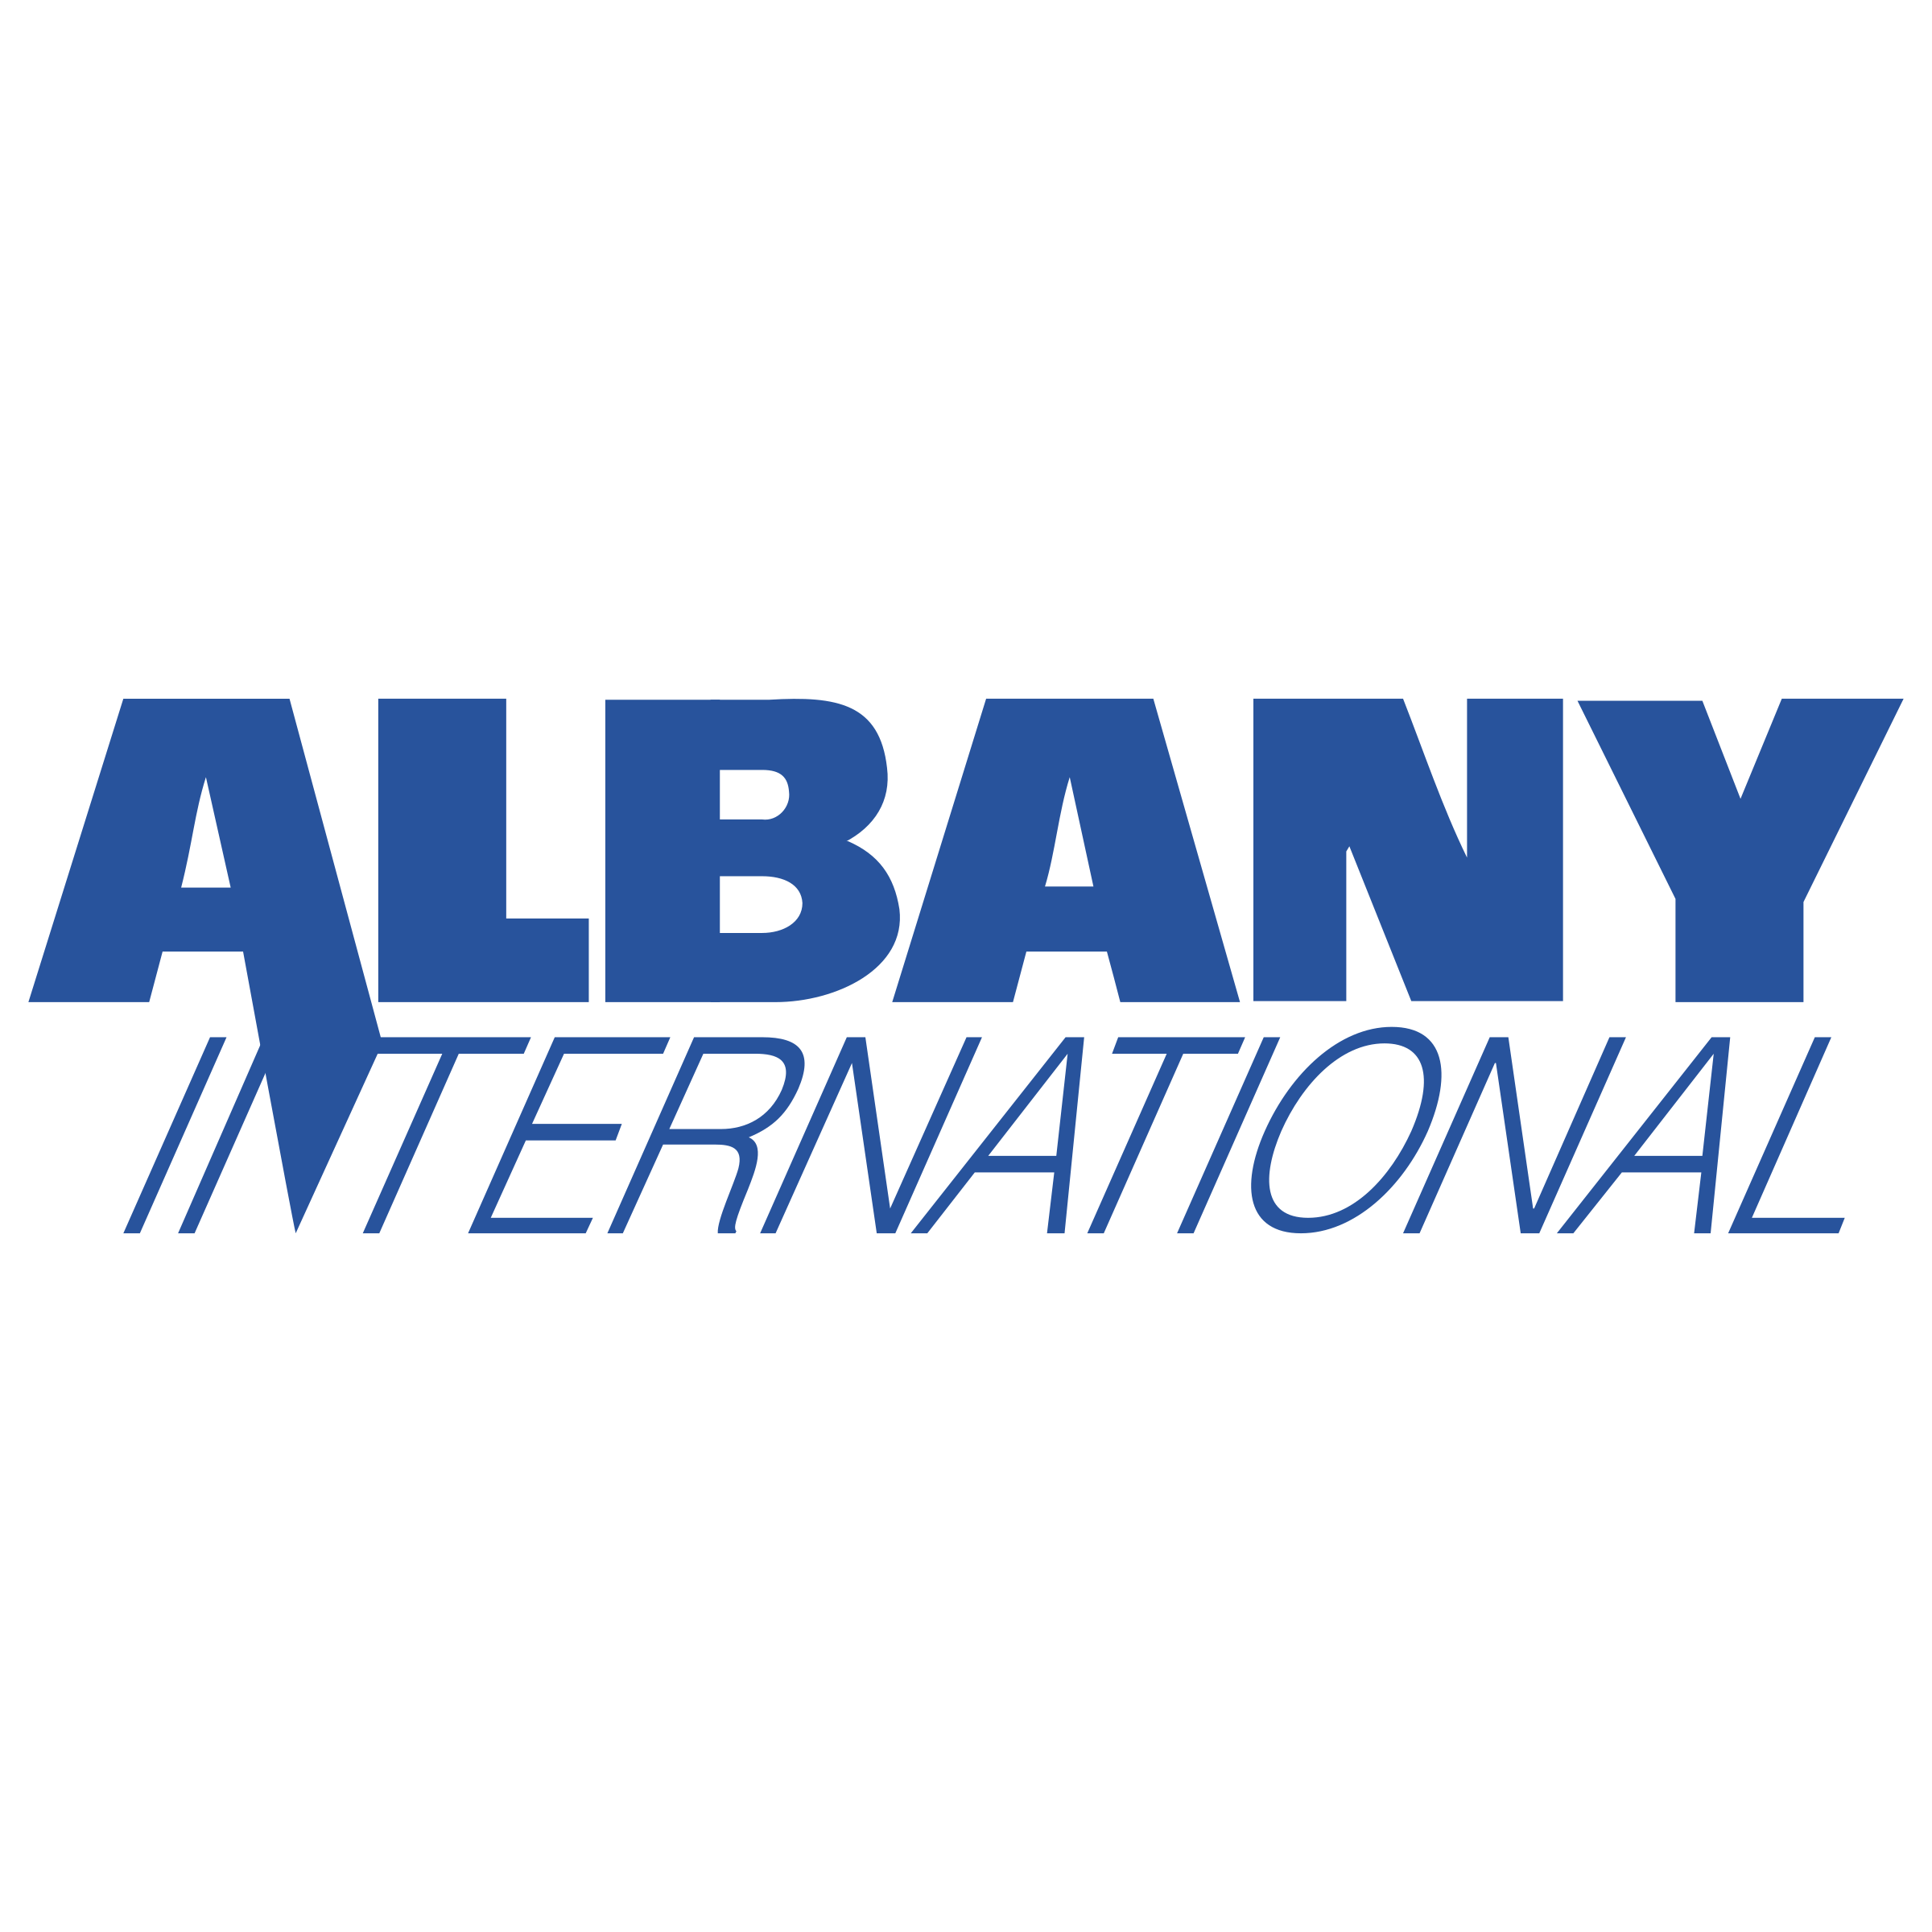 albany-international-logo-png-transparent